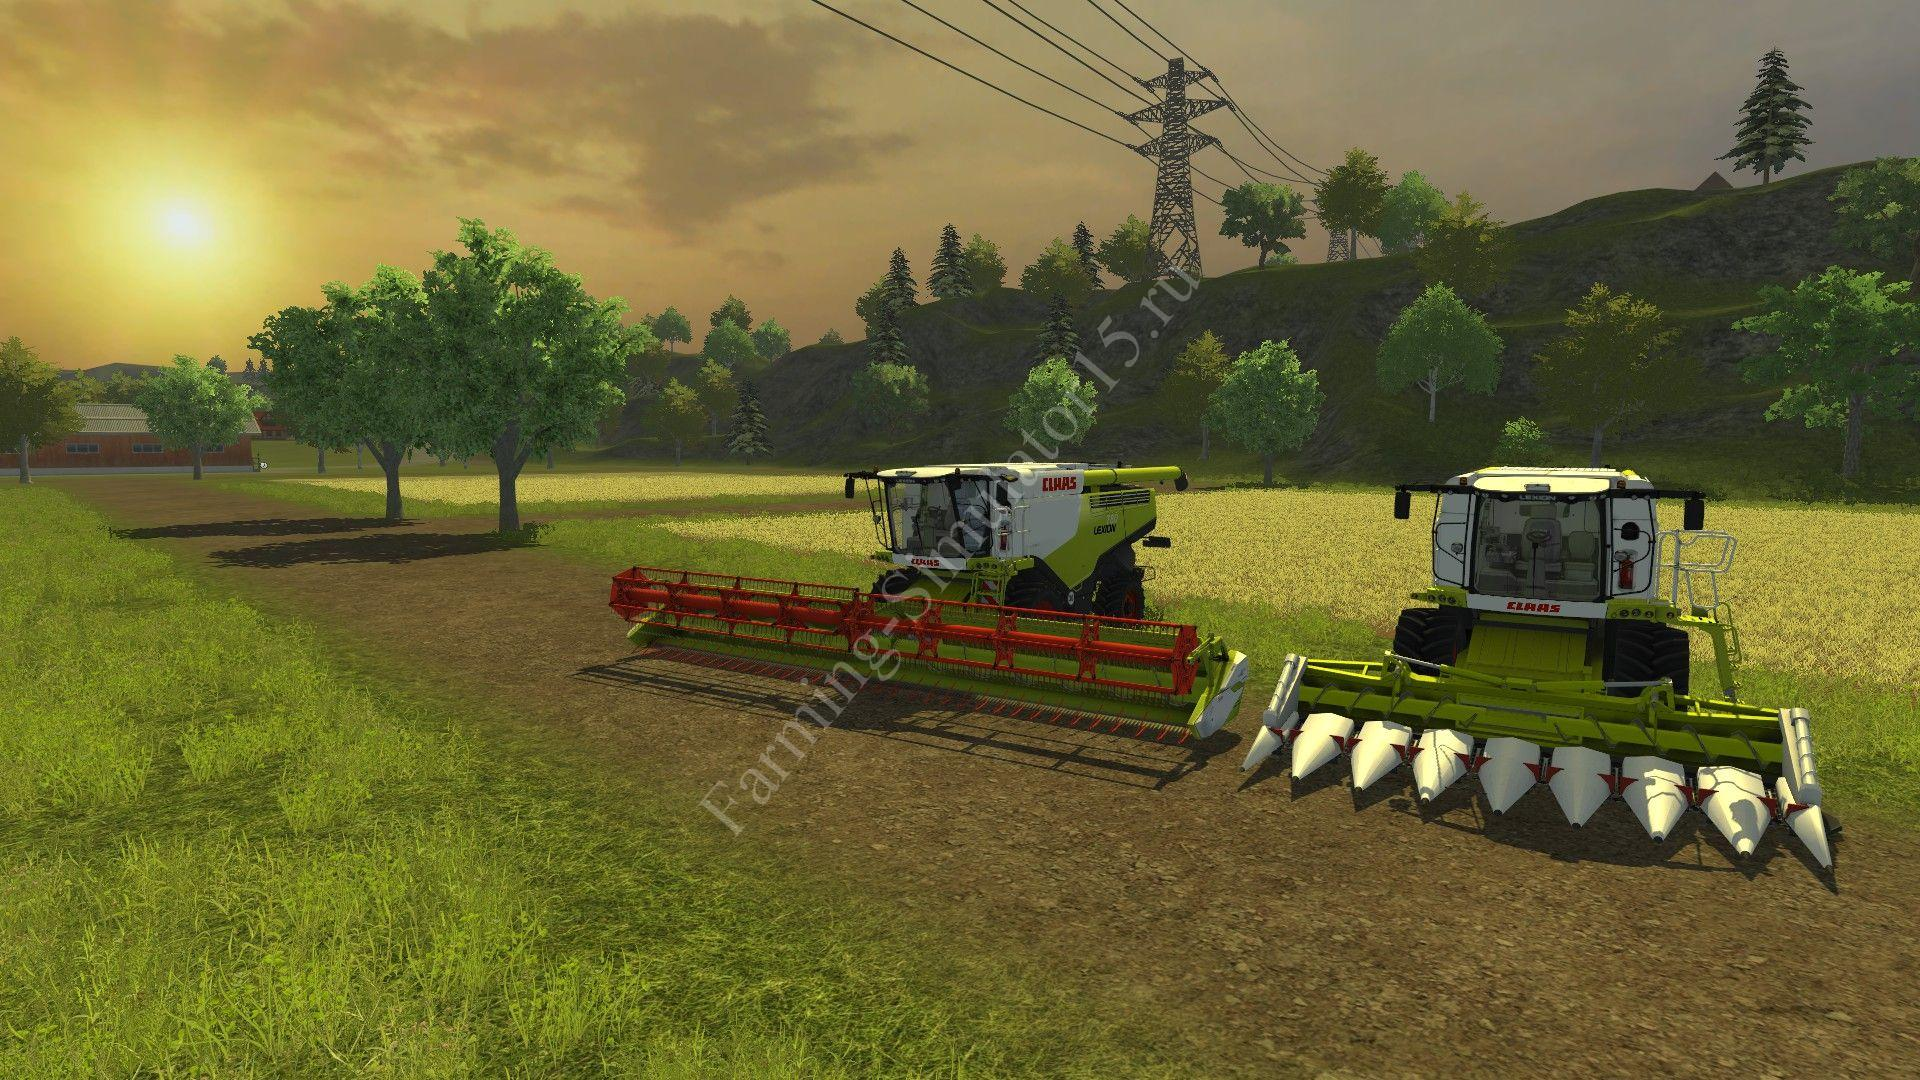 Мод комбайна CLAAS Lexion 780 v 2.0 Farming Simulator 2013, Farming Simulator 13